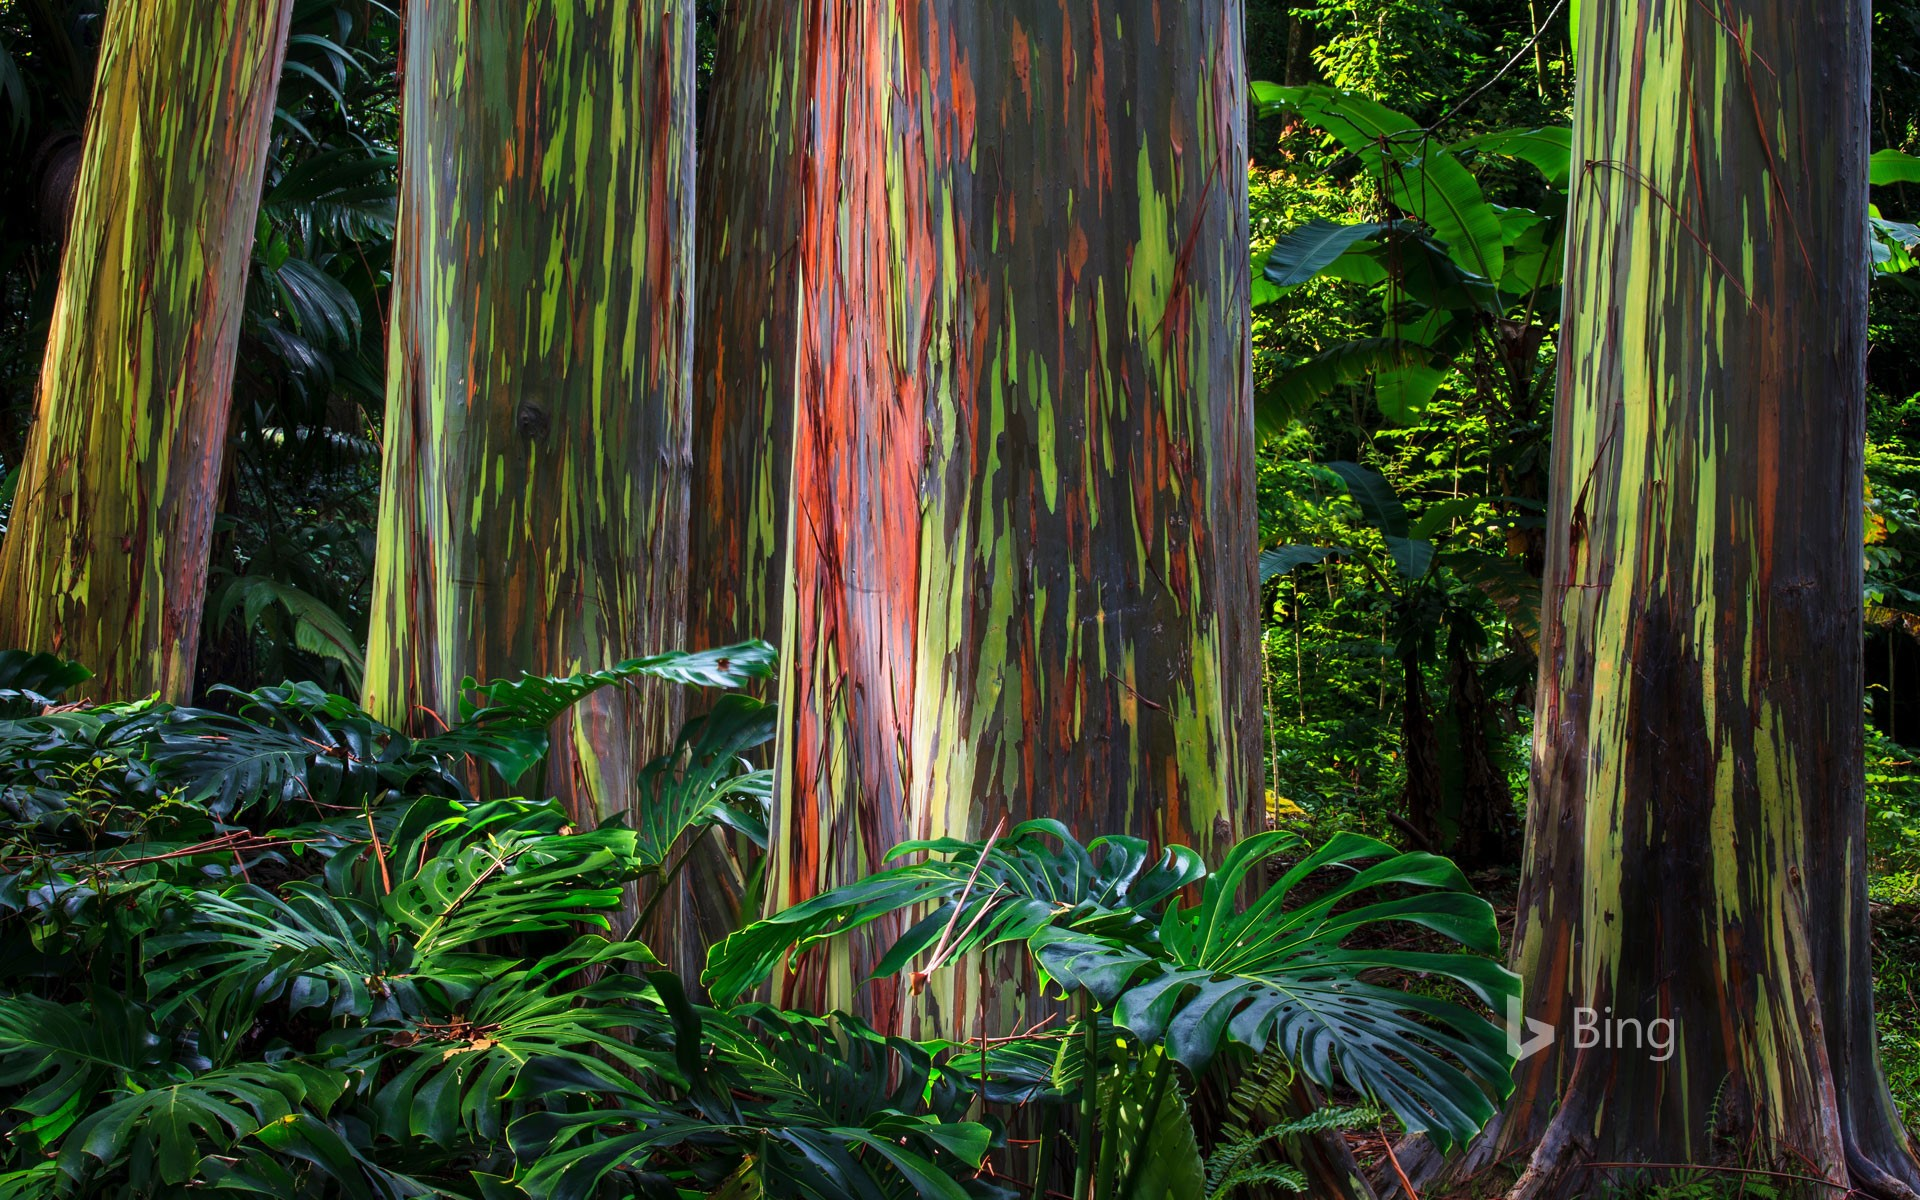 Rainbow eucalyptus trees along the Hana Highway, Maui